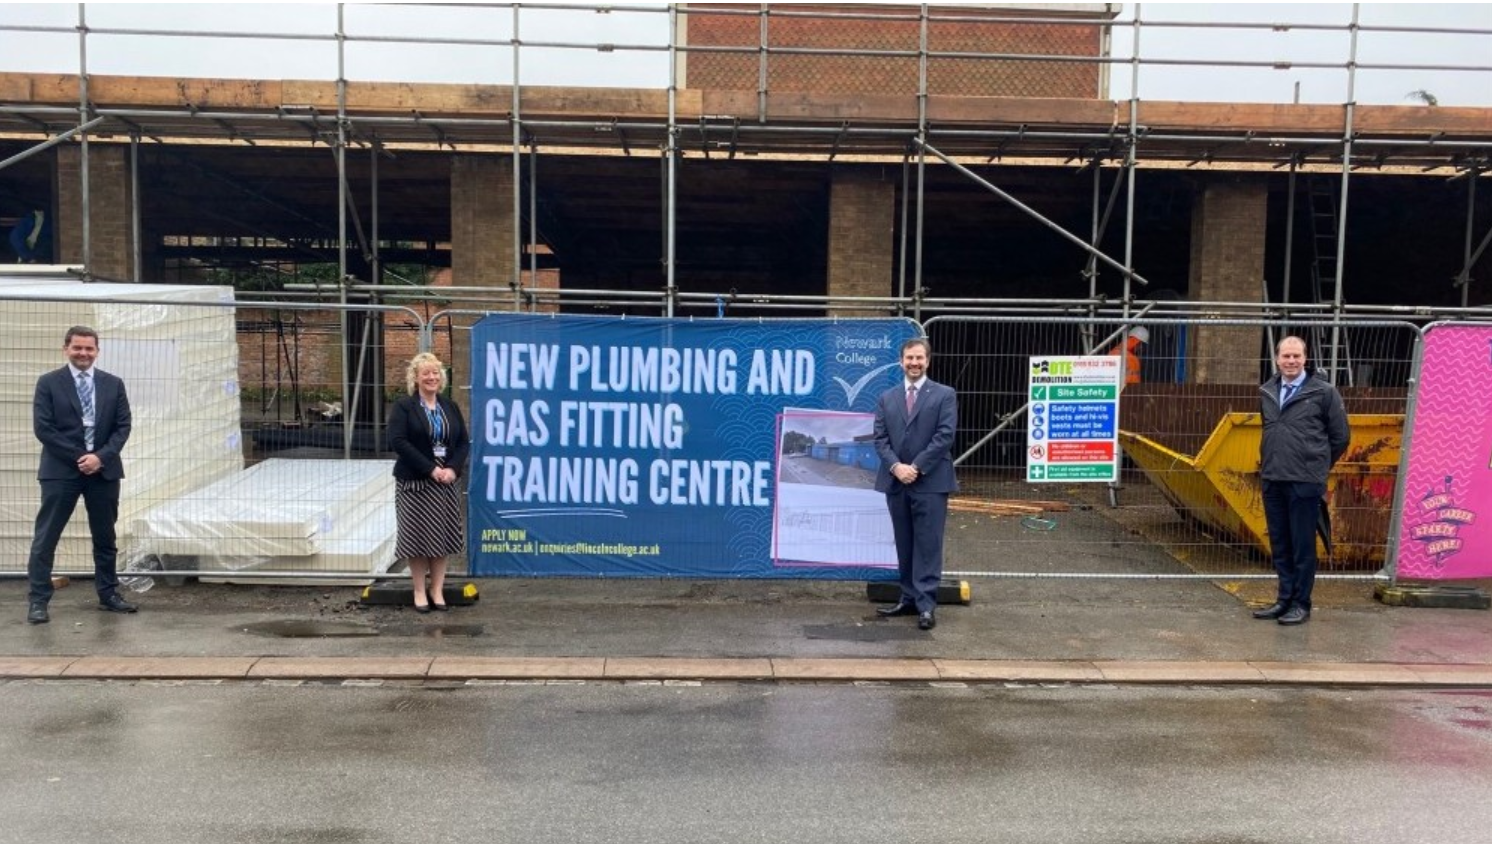 Newark College - Plumbing and Gas Fitting Training Centre